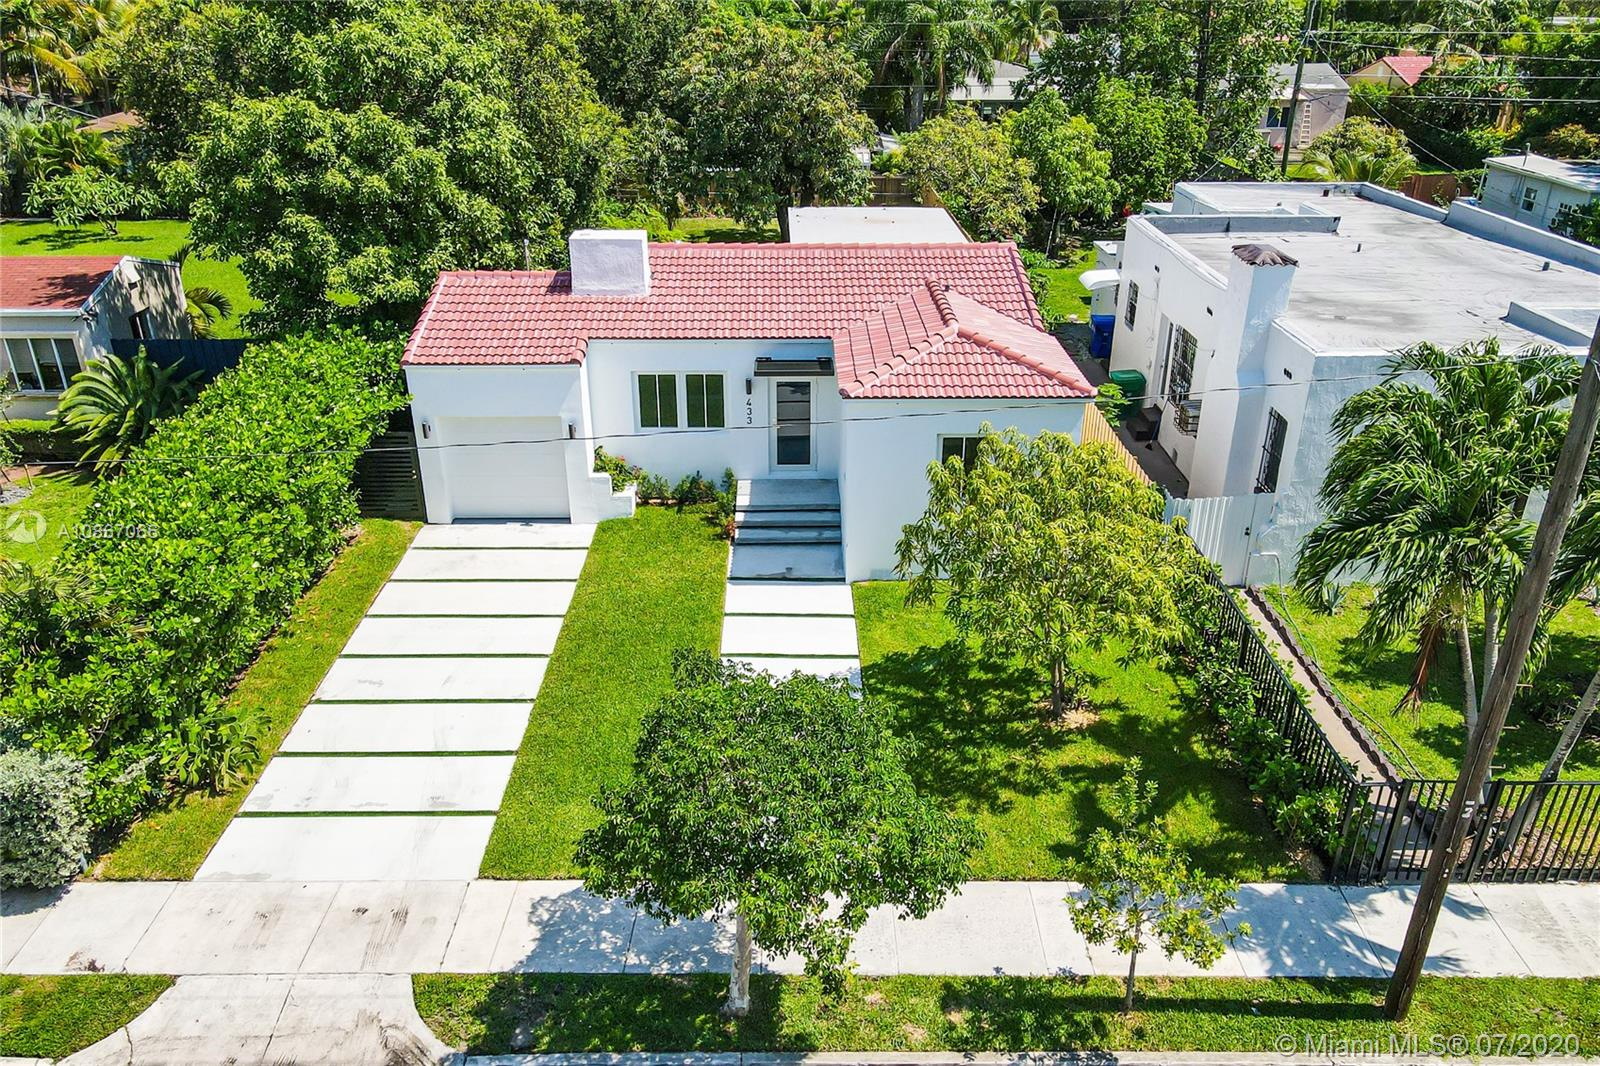 433 NE 72nd St, Miami, Florida 33138, 3 Bedrooms Bedrooms, ,2 BathroomsBathrooms,Residential,For Sale,433 NE 72nd St,A10867066